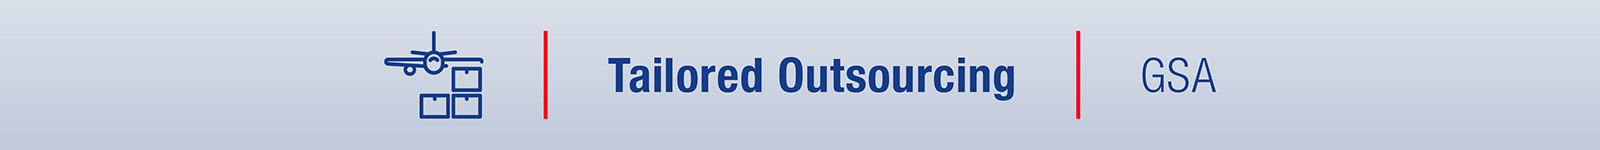 Fly Us Tailored Outsourcing GSA1